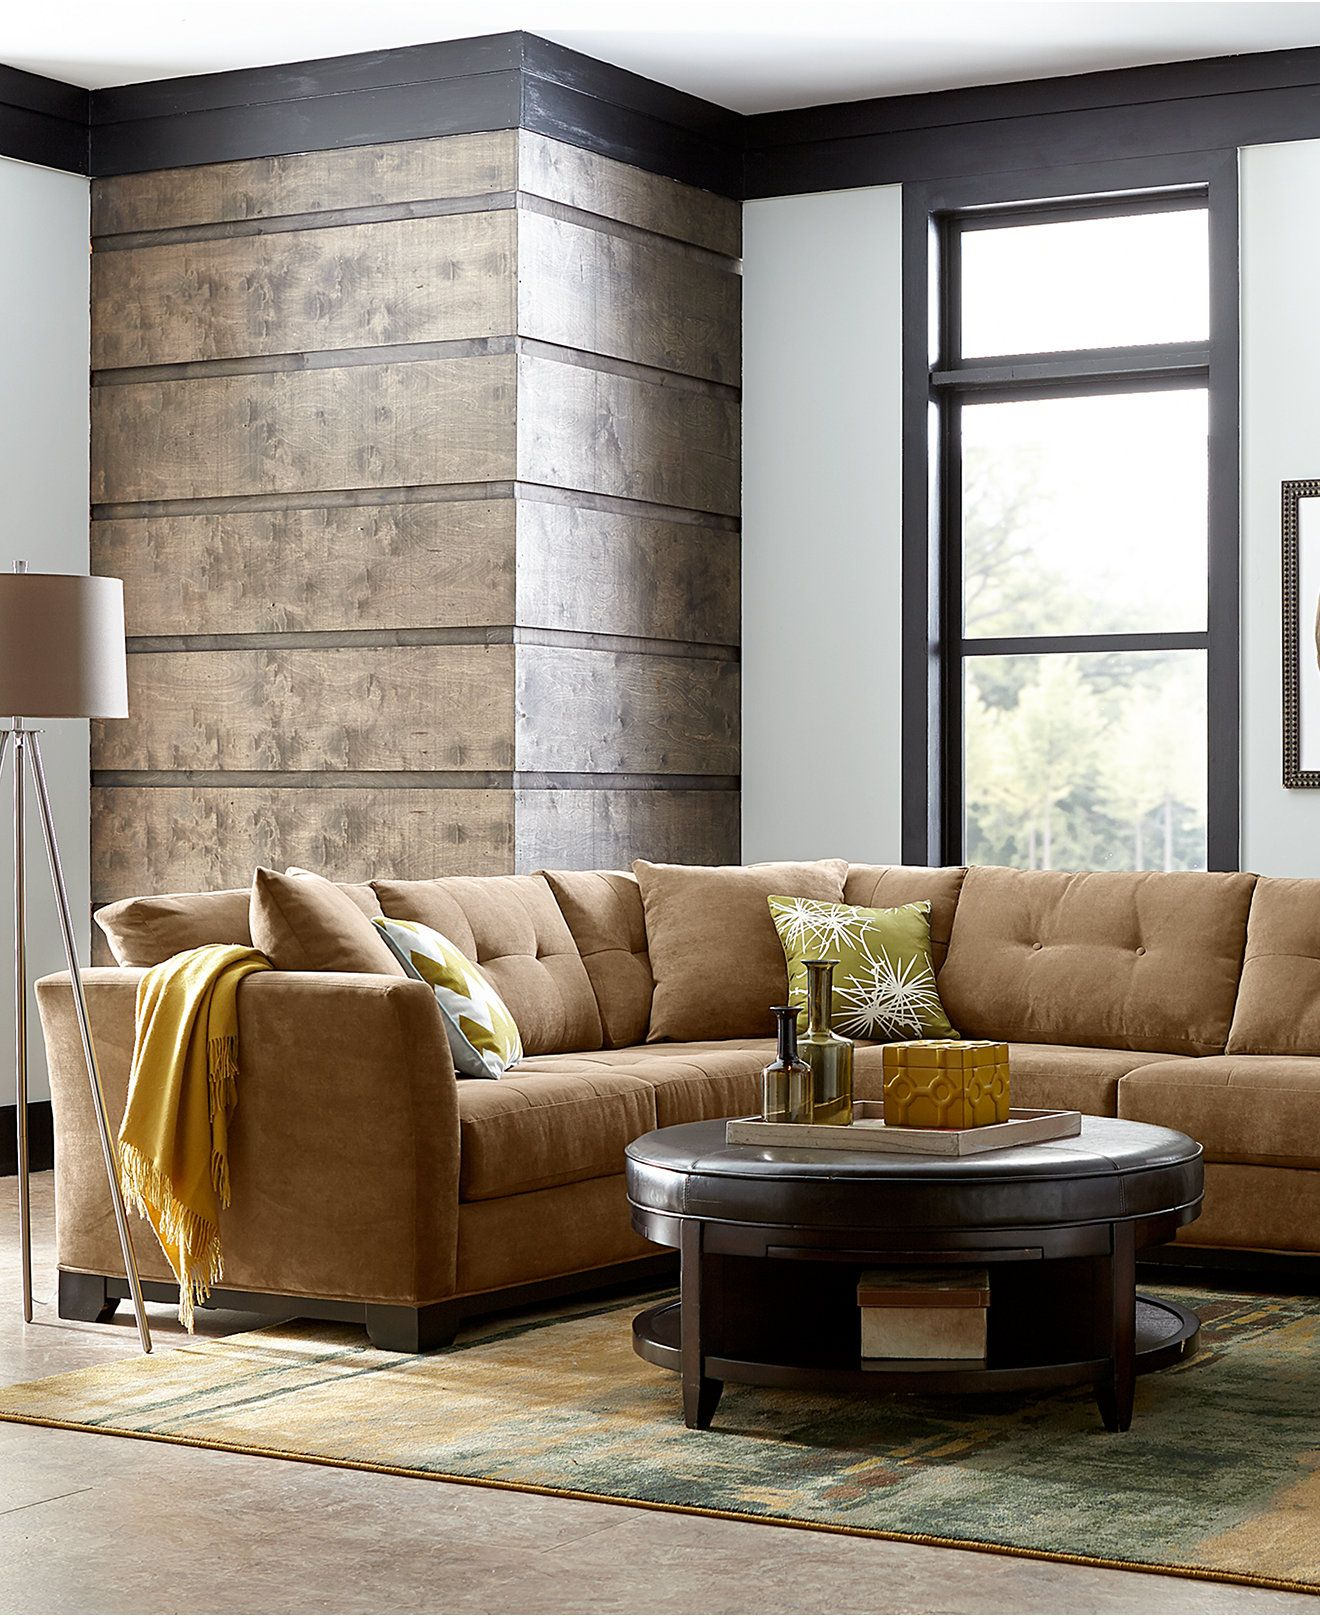 1000 images about Kuss decorating on Pinterest